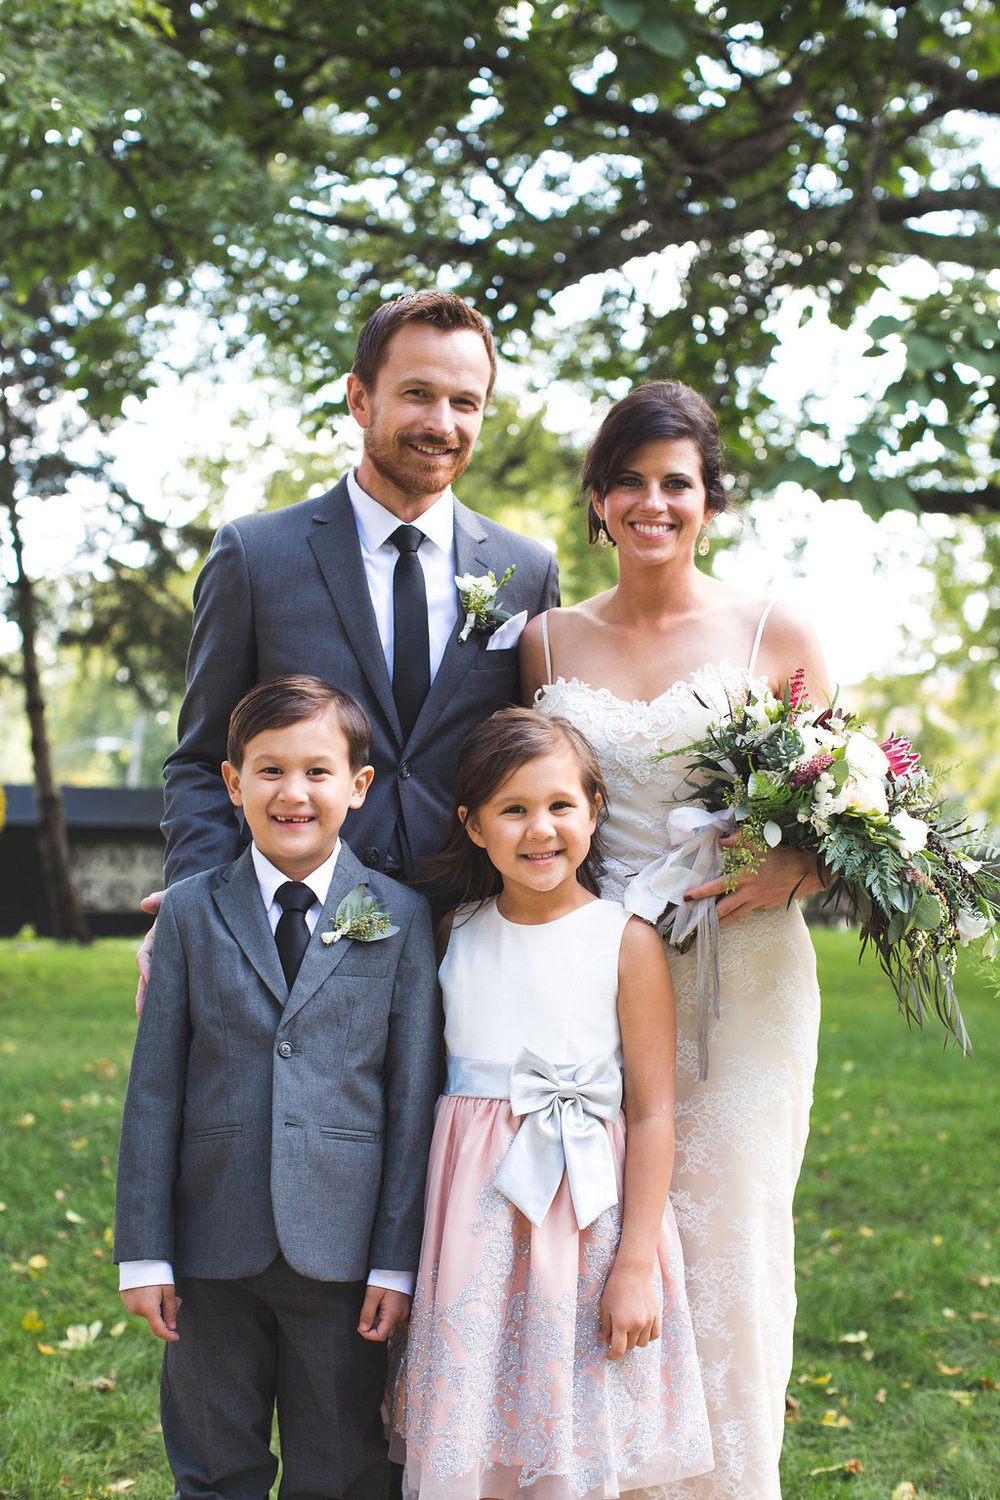 flower girl and ring bearer in mini bride and groom outfits | Annunciation church wedding | bride cradling bouquet | groom with scruff